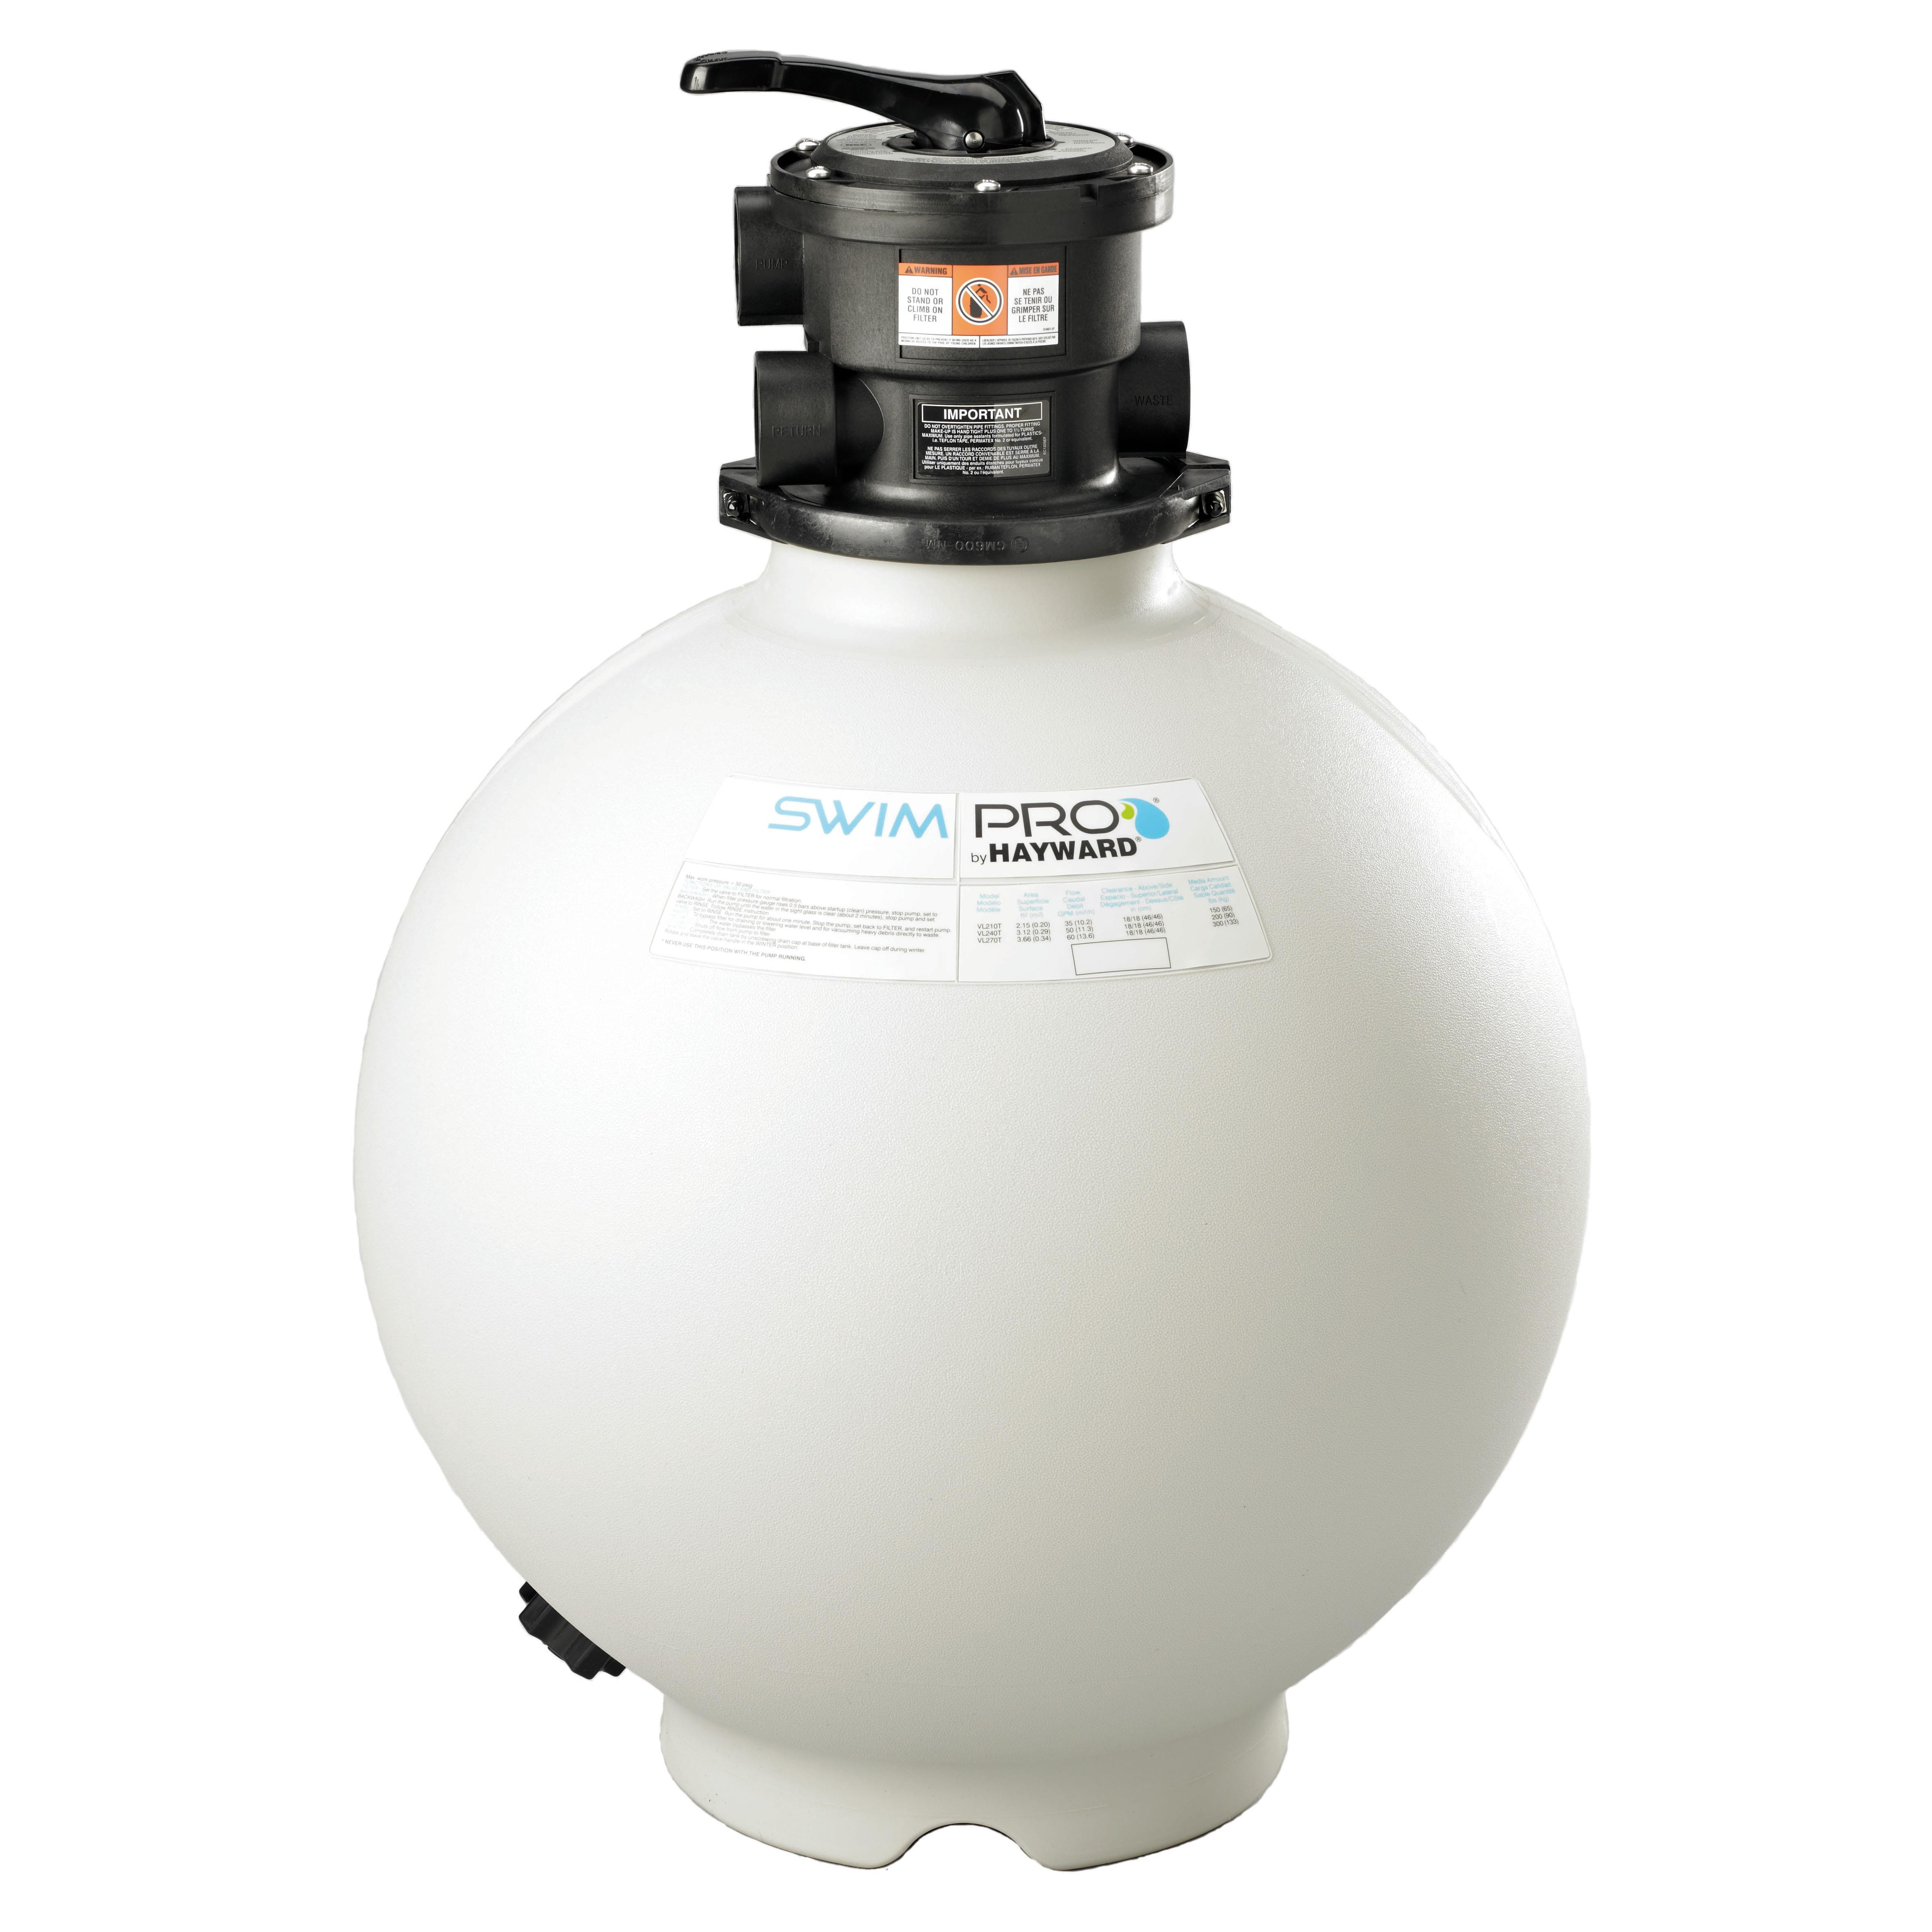 Hayward 27 inch swim pro sand filter with 6 way valve - Hayward pool equipment ...